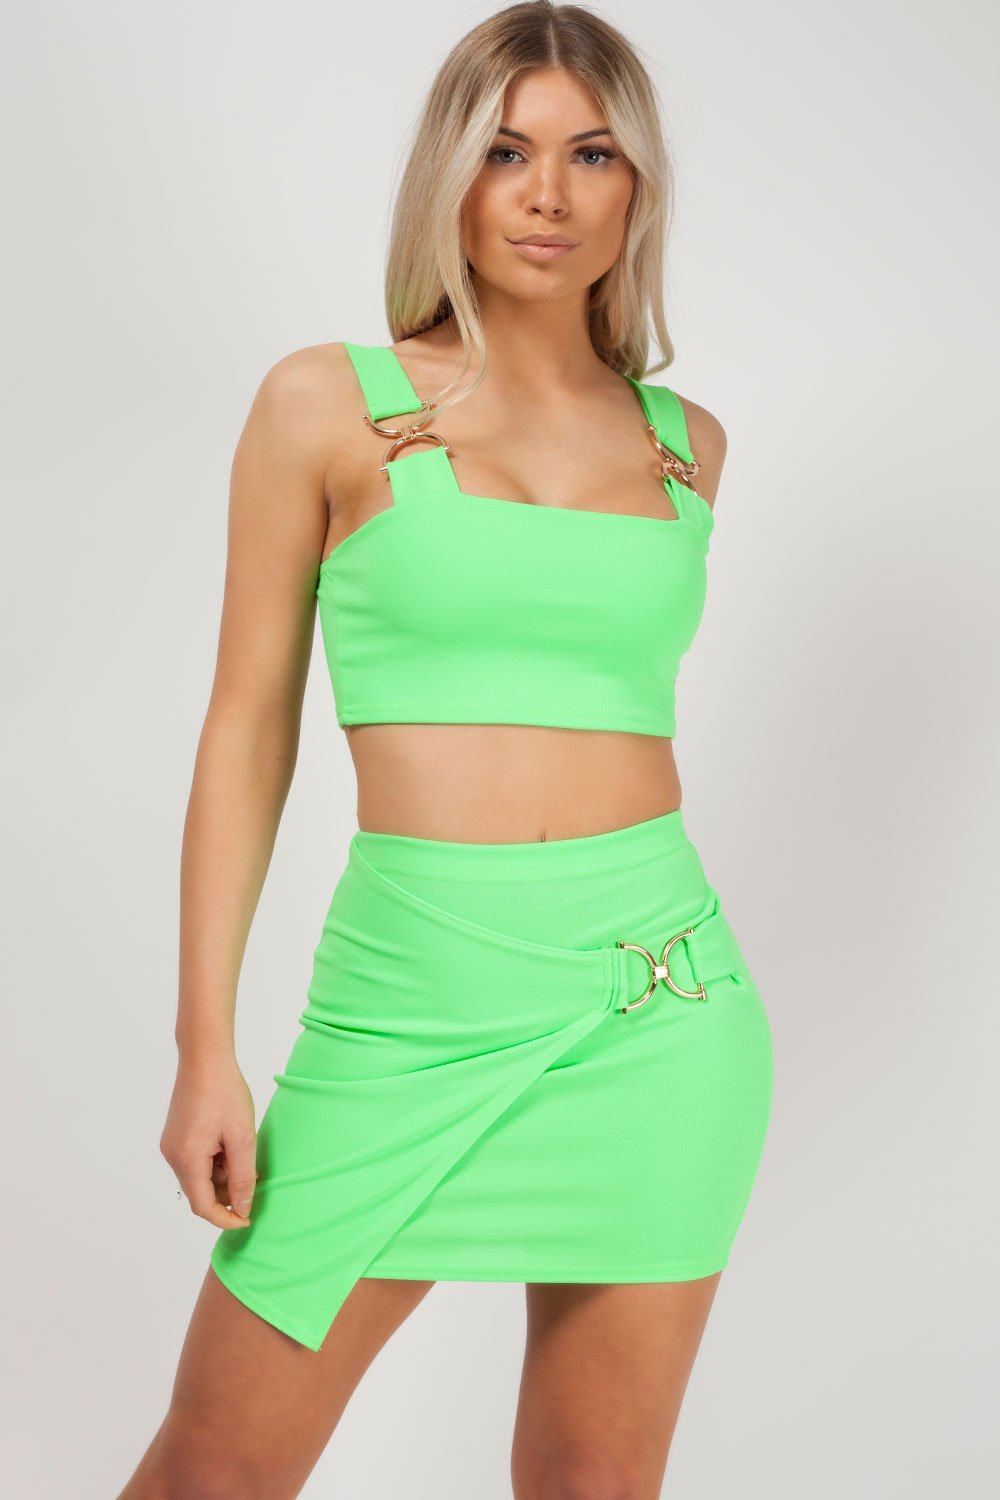 two piece skirt and top neon green styledup fashion